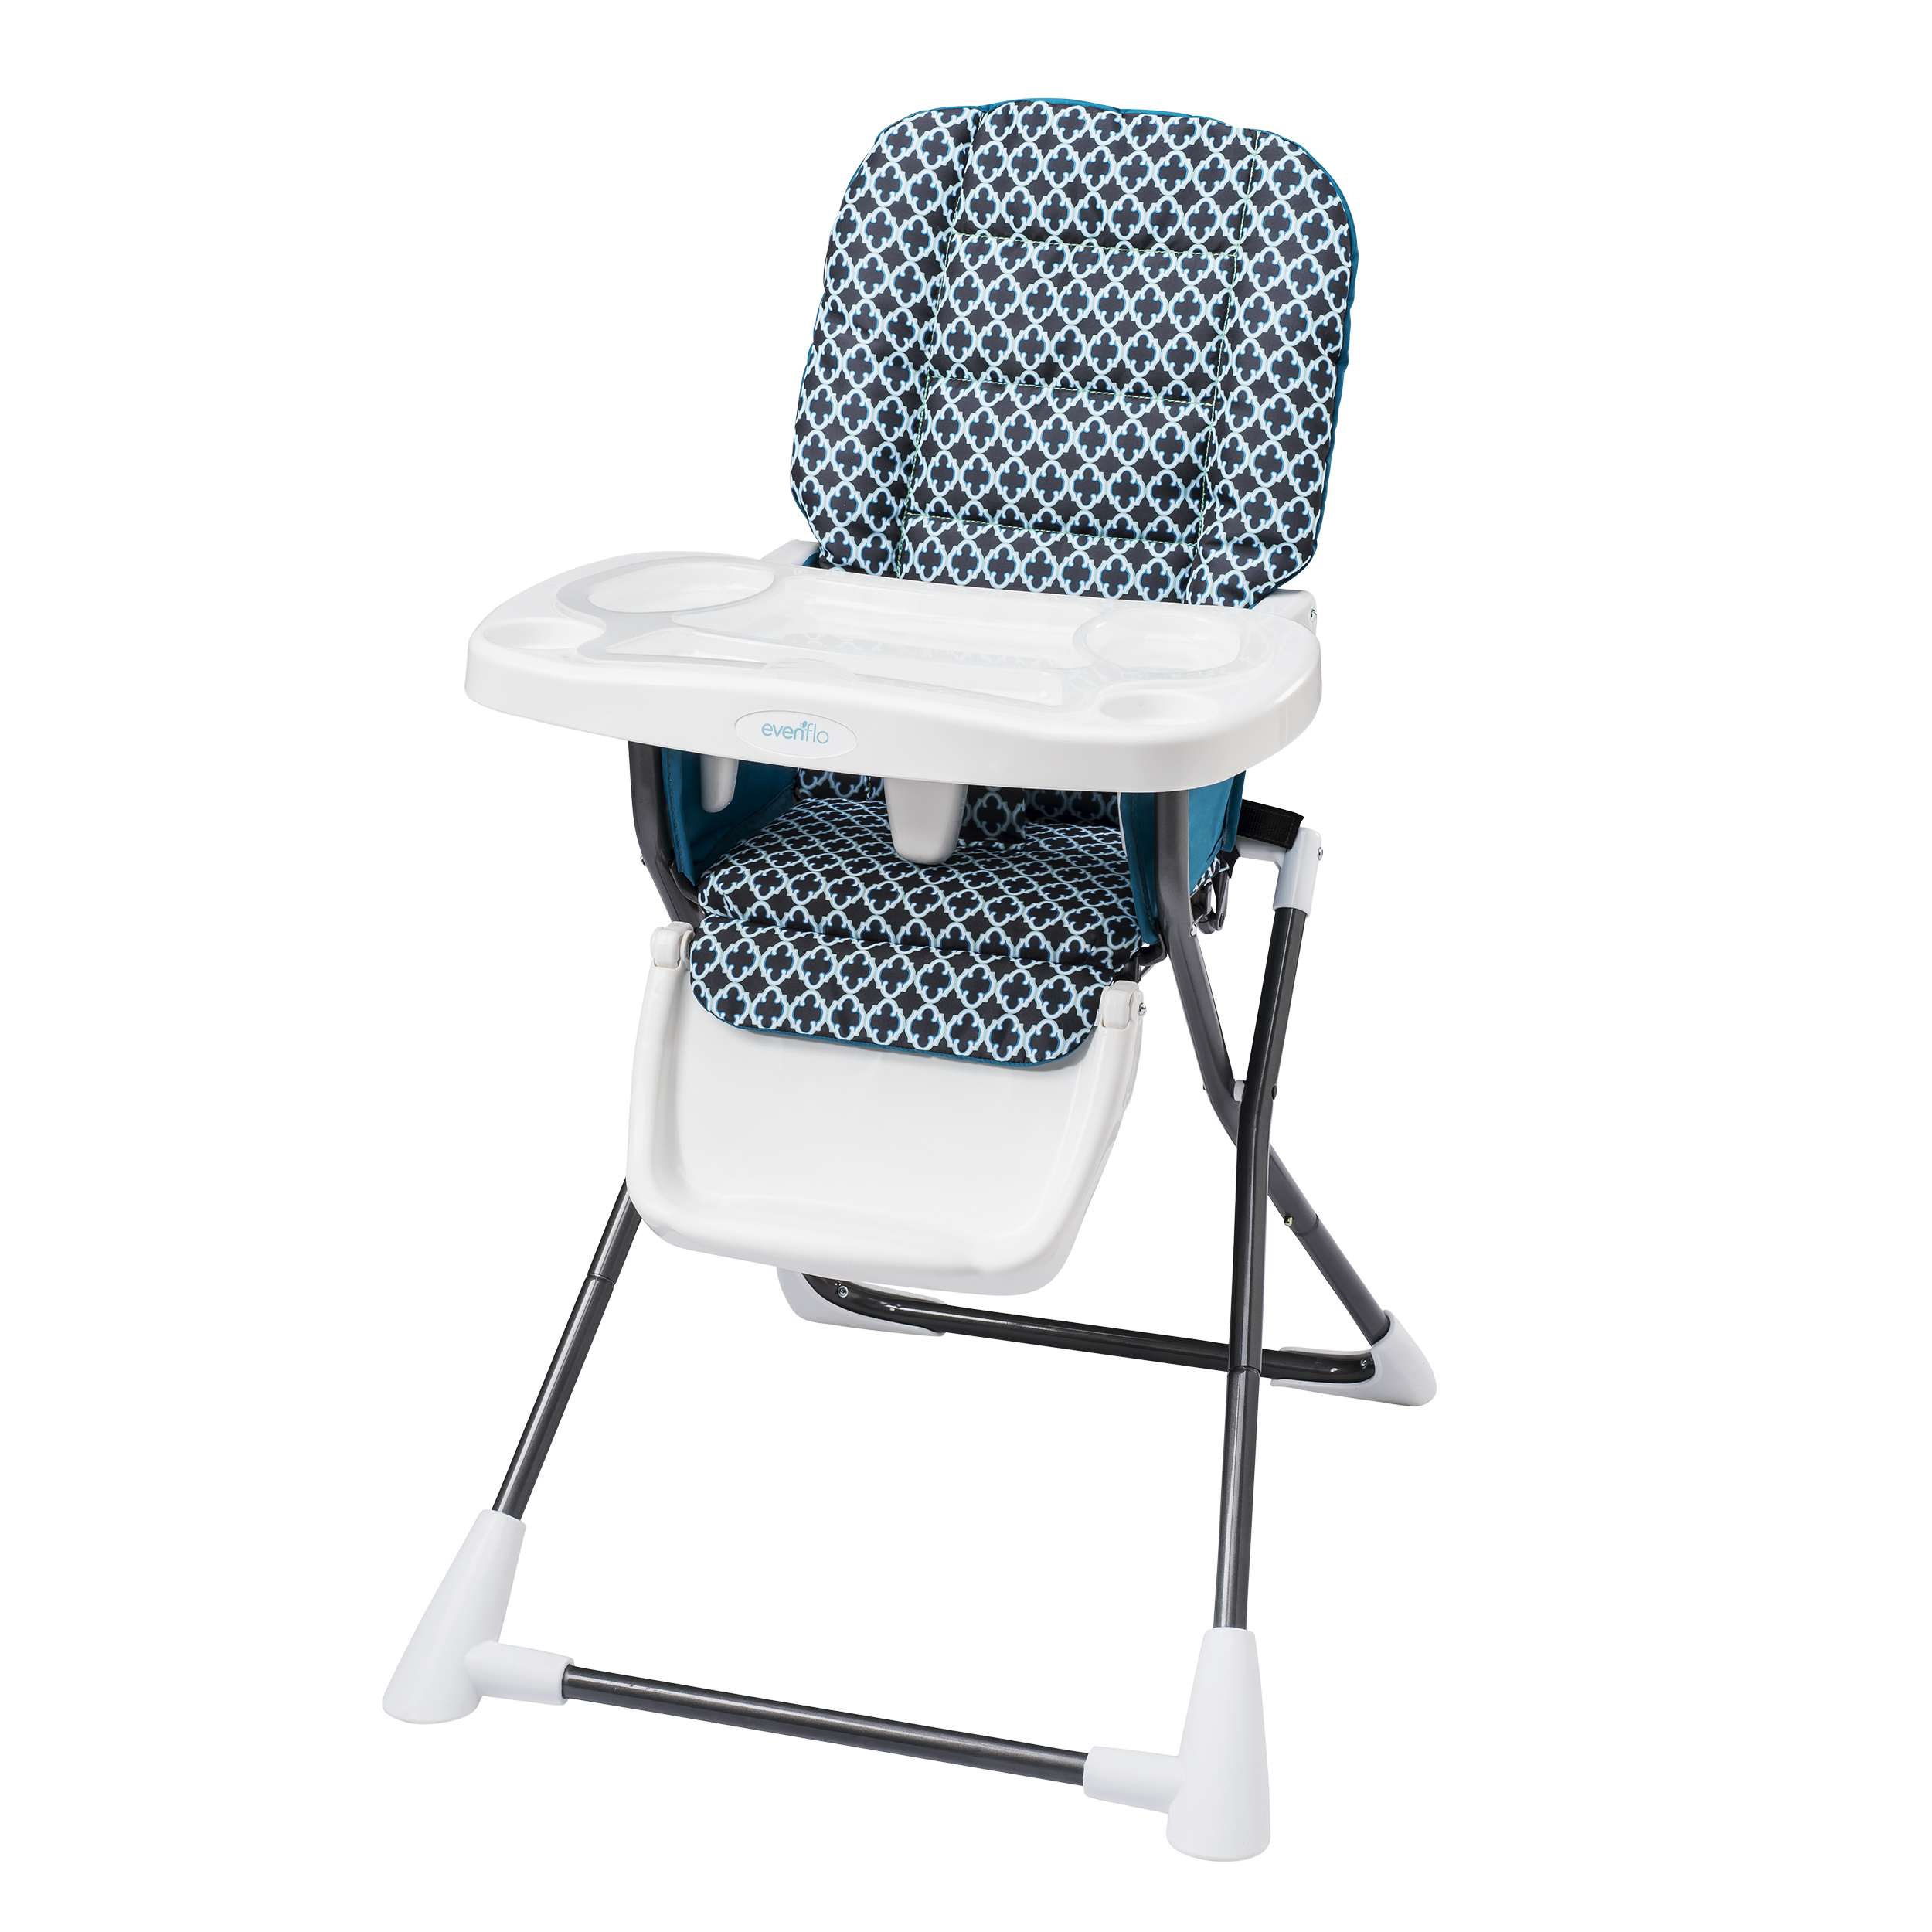 Evenflo Compact Fold High Chair Evenflo Compact Fold High Chair Monaco Baby Baby Gear